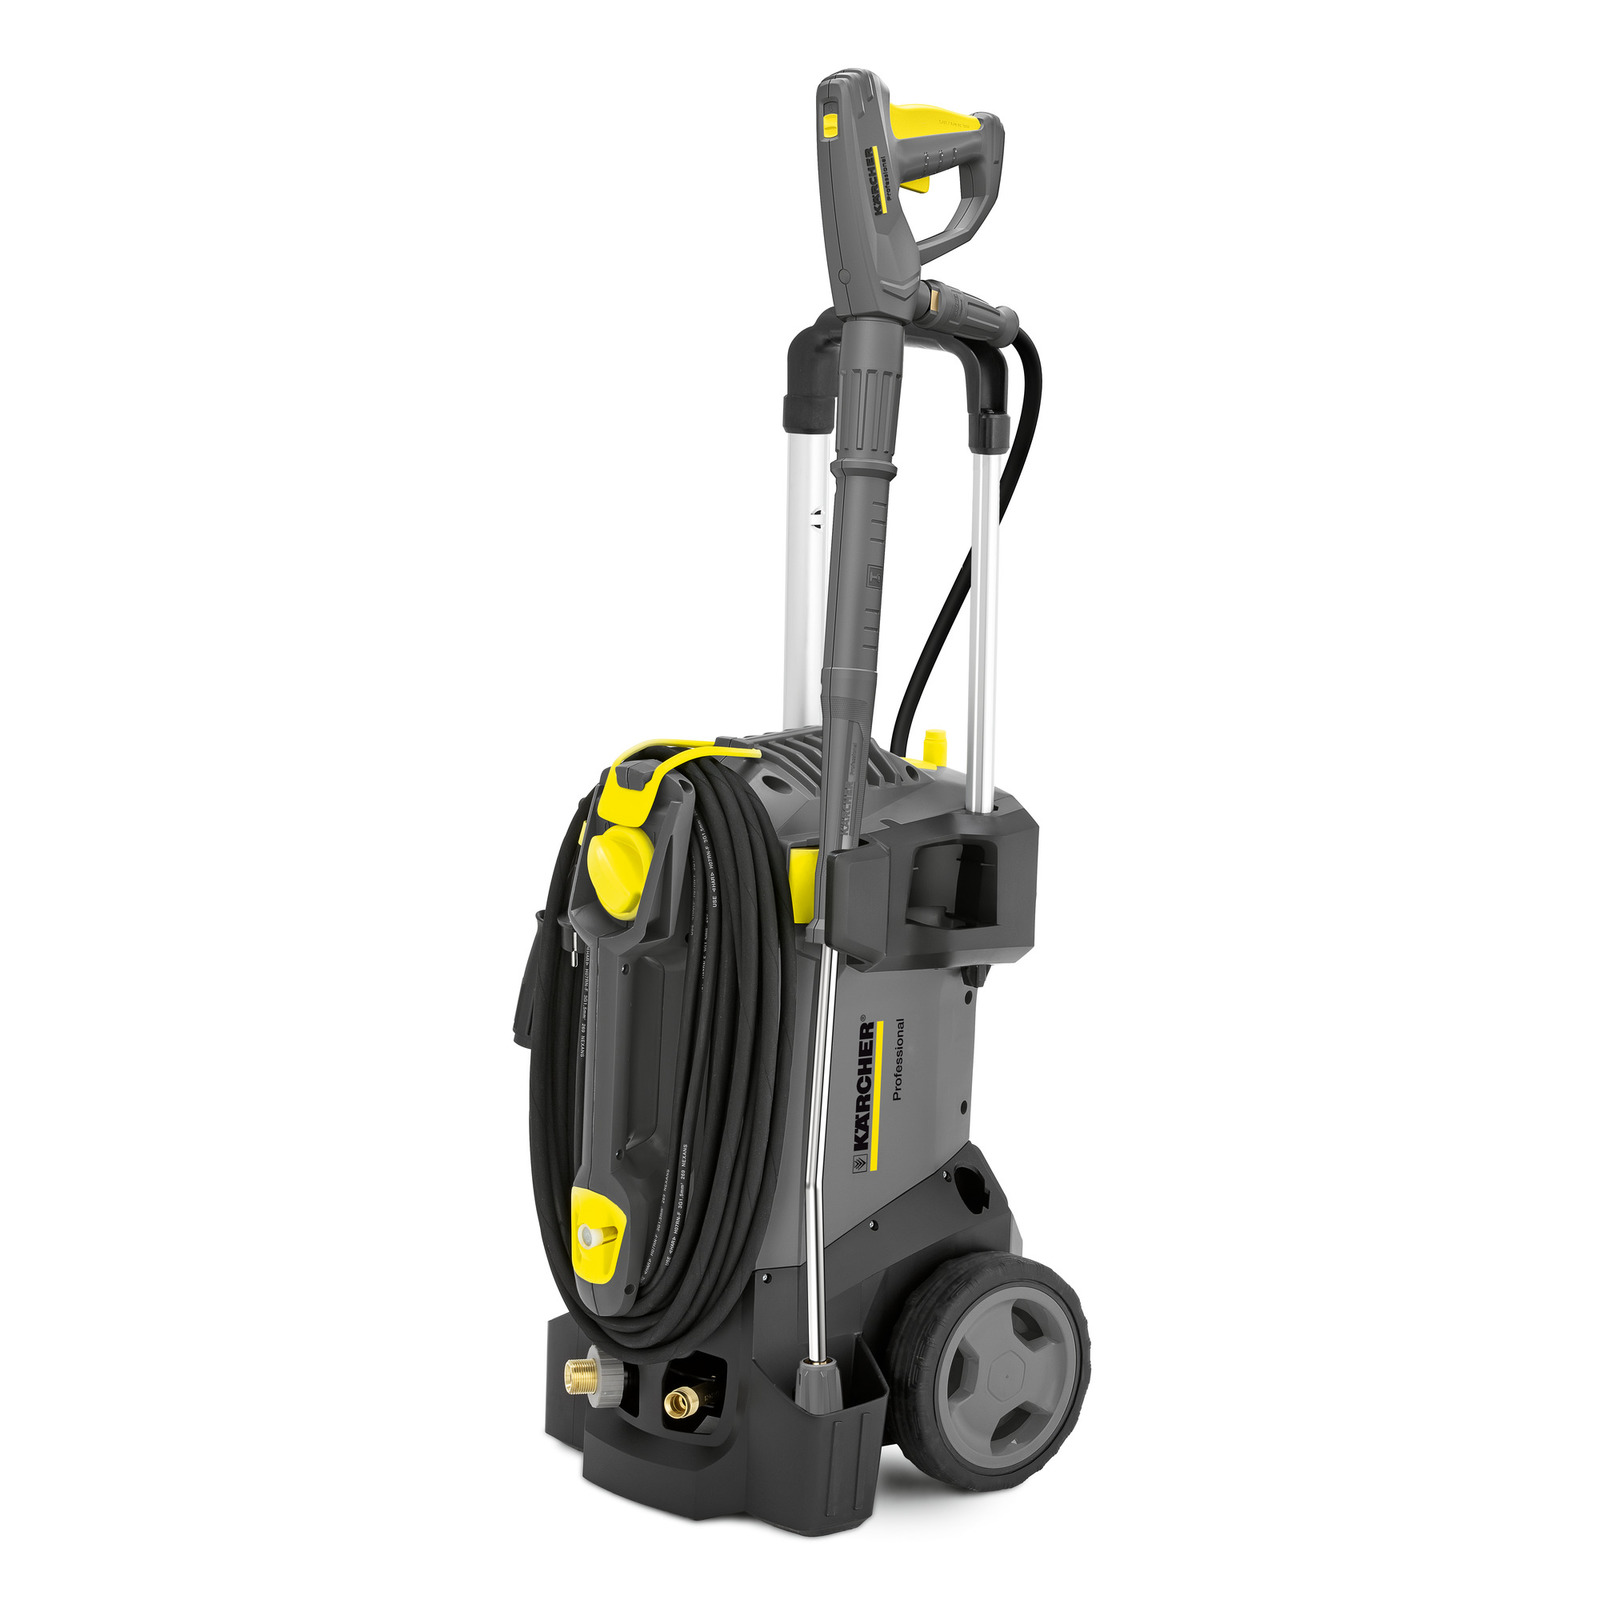 KARCHER 1.520-989.0 - ProHD 800 High Pressure Washer